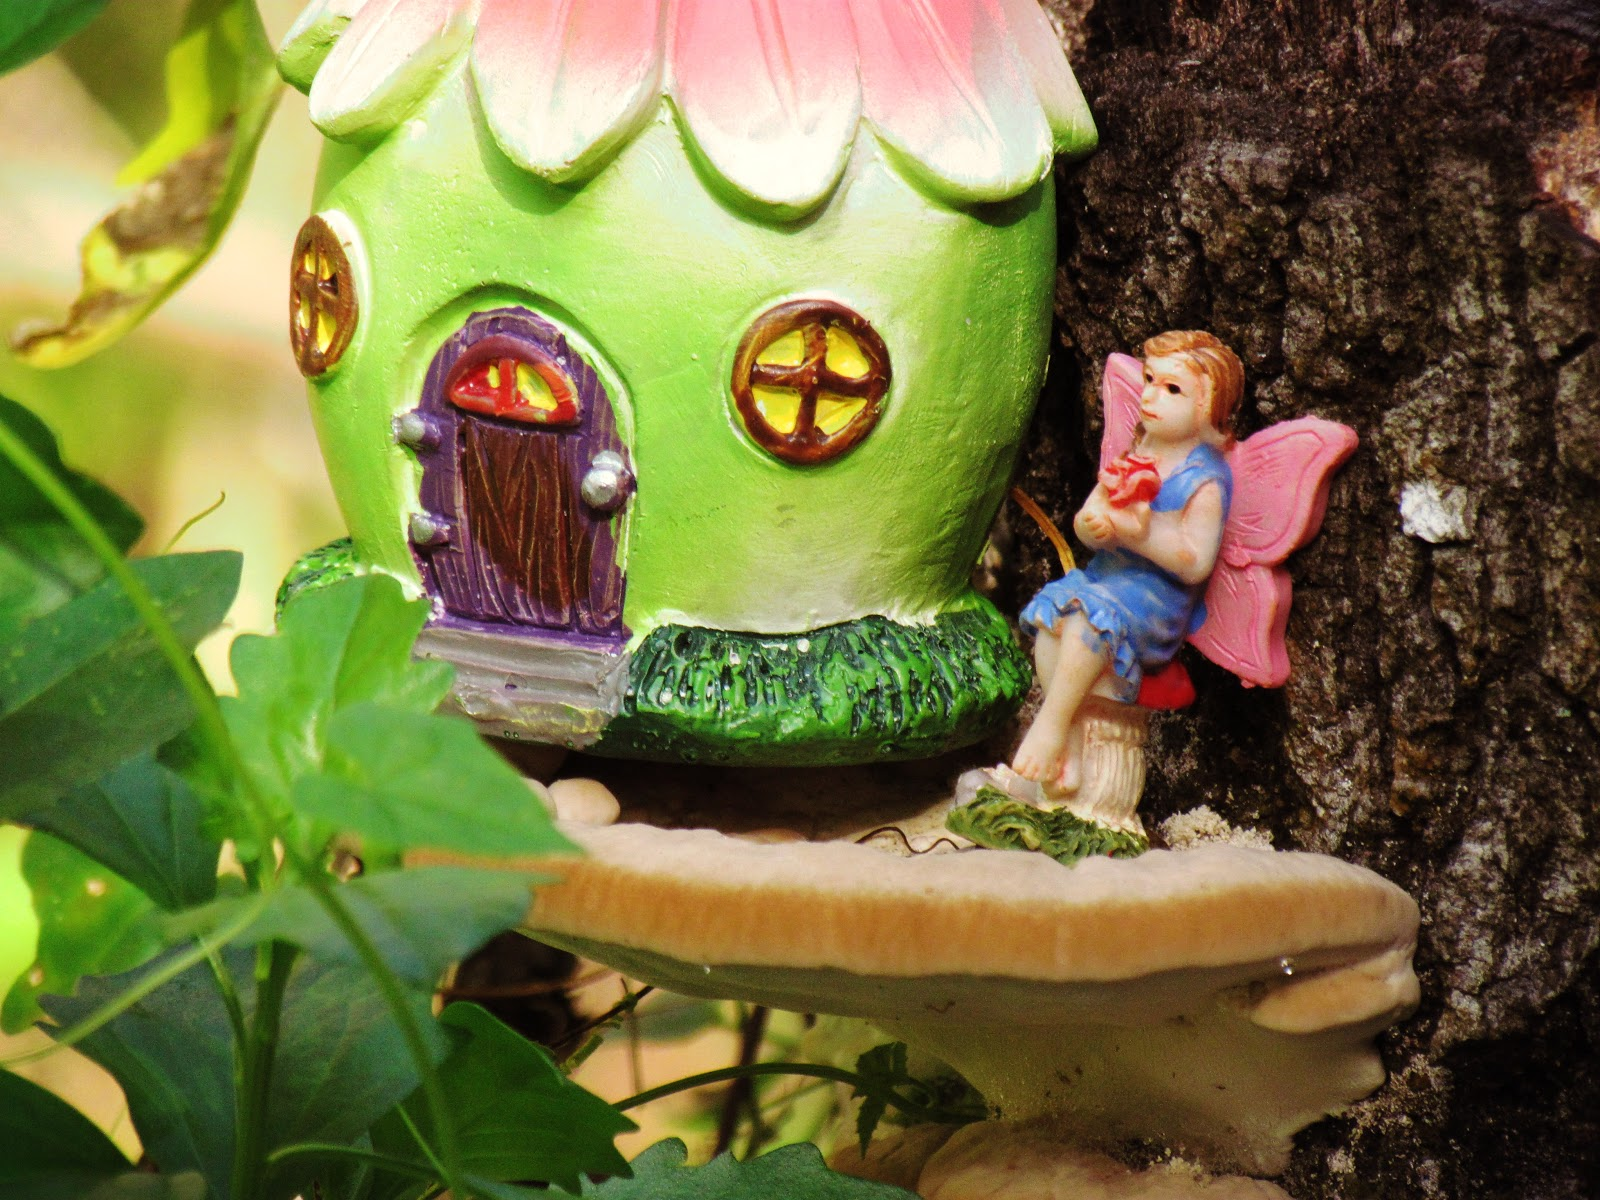 A fairy girl figurine with a flower dress living on a mushroom patio with a green fairy house on a hiking trail in Florida